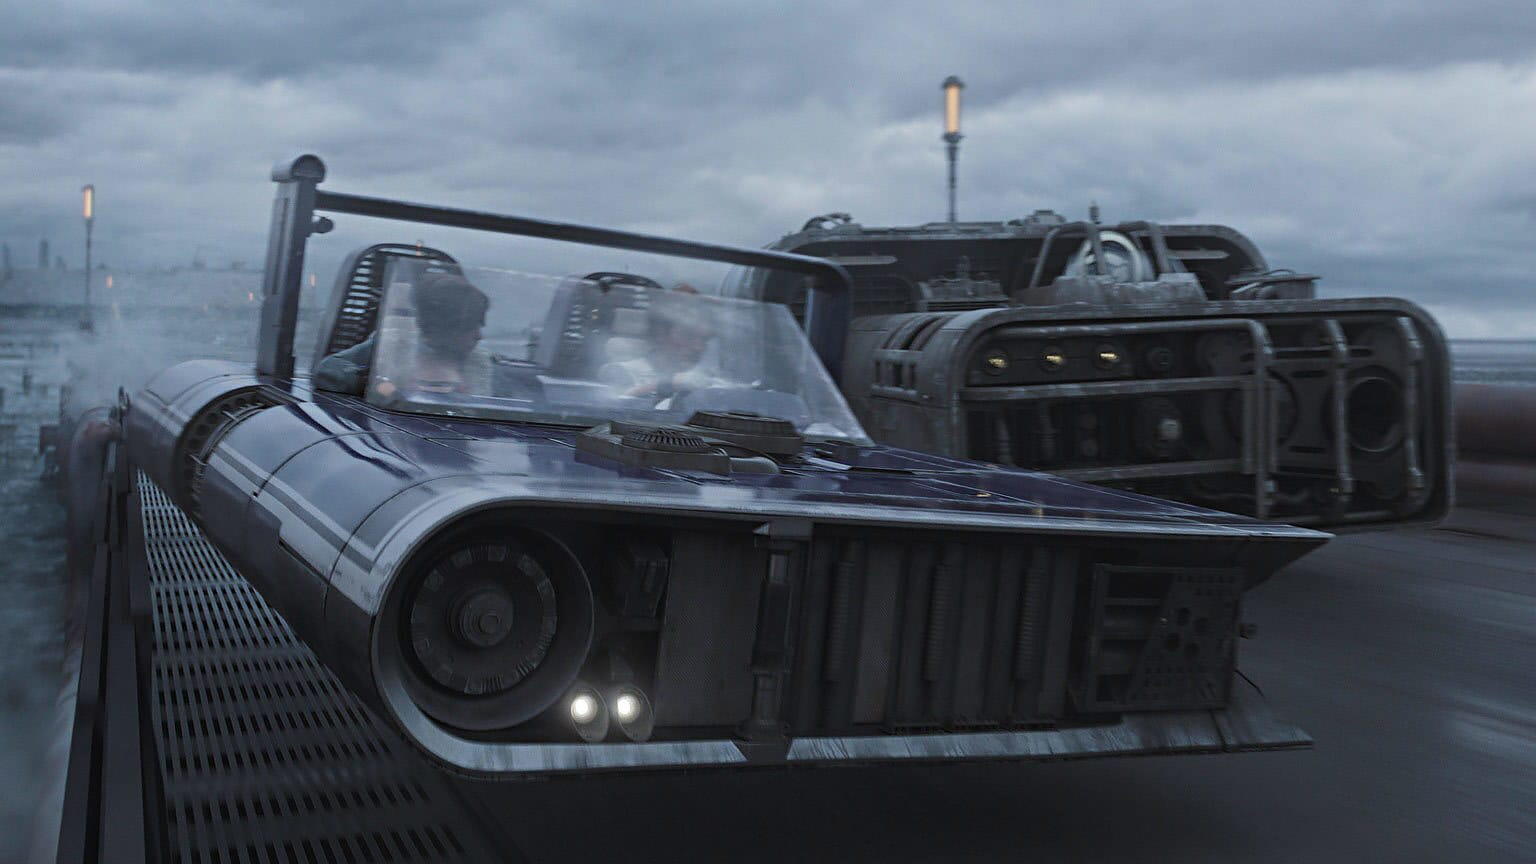 9 Underrated Ships and Vehicles in Star Wars